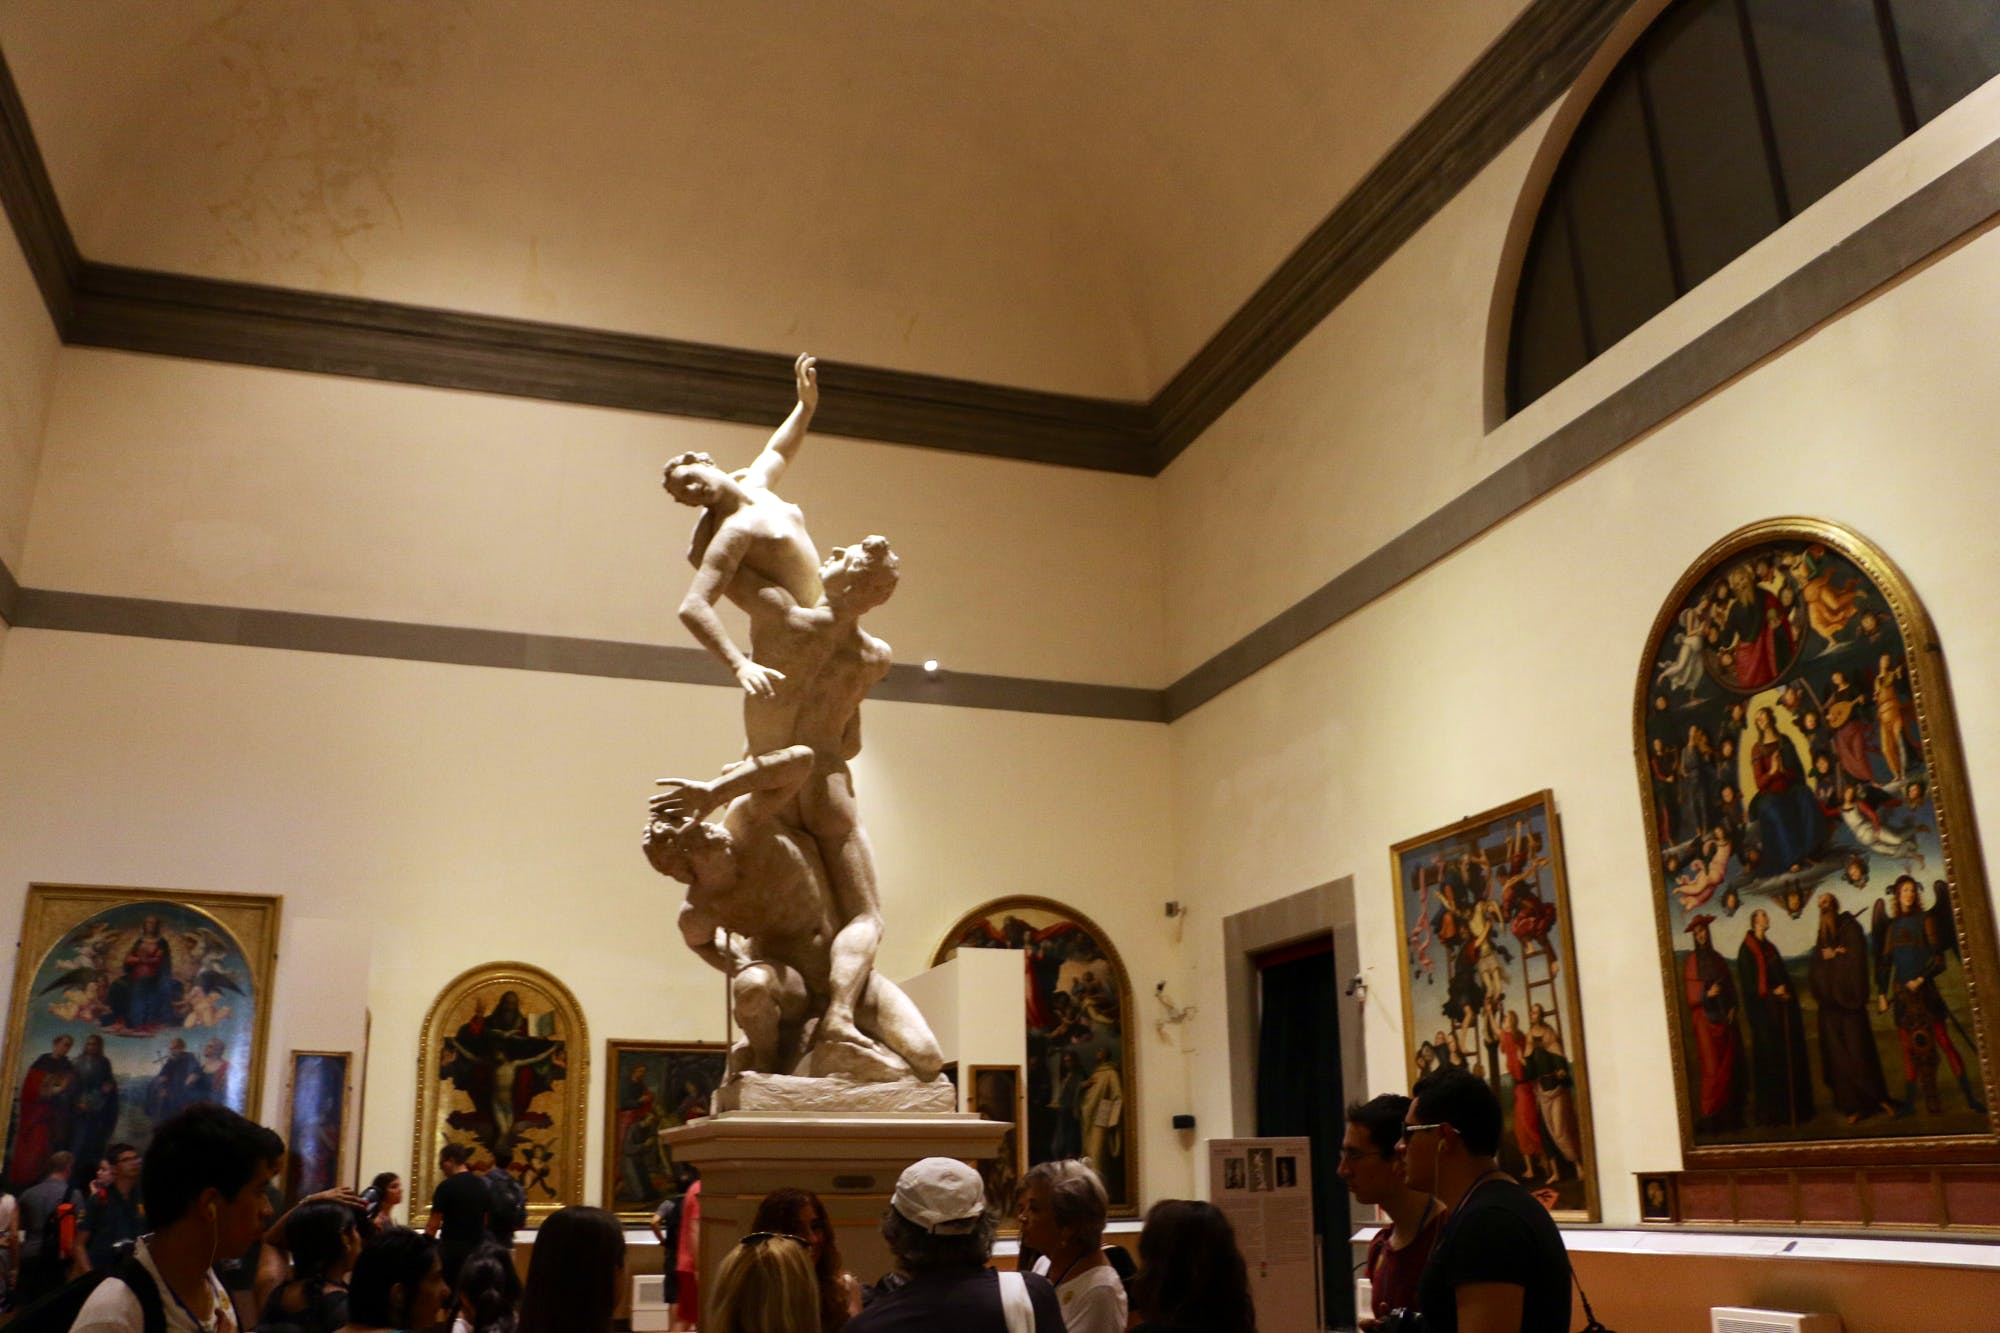 Accademia Gallery Guided Tour: Review of Guided Tour at Accademia